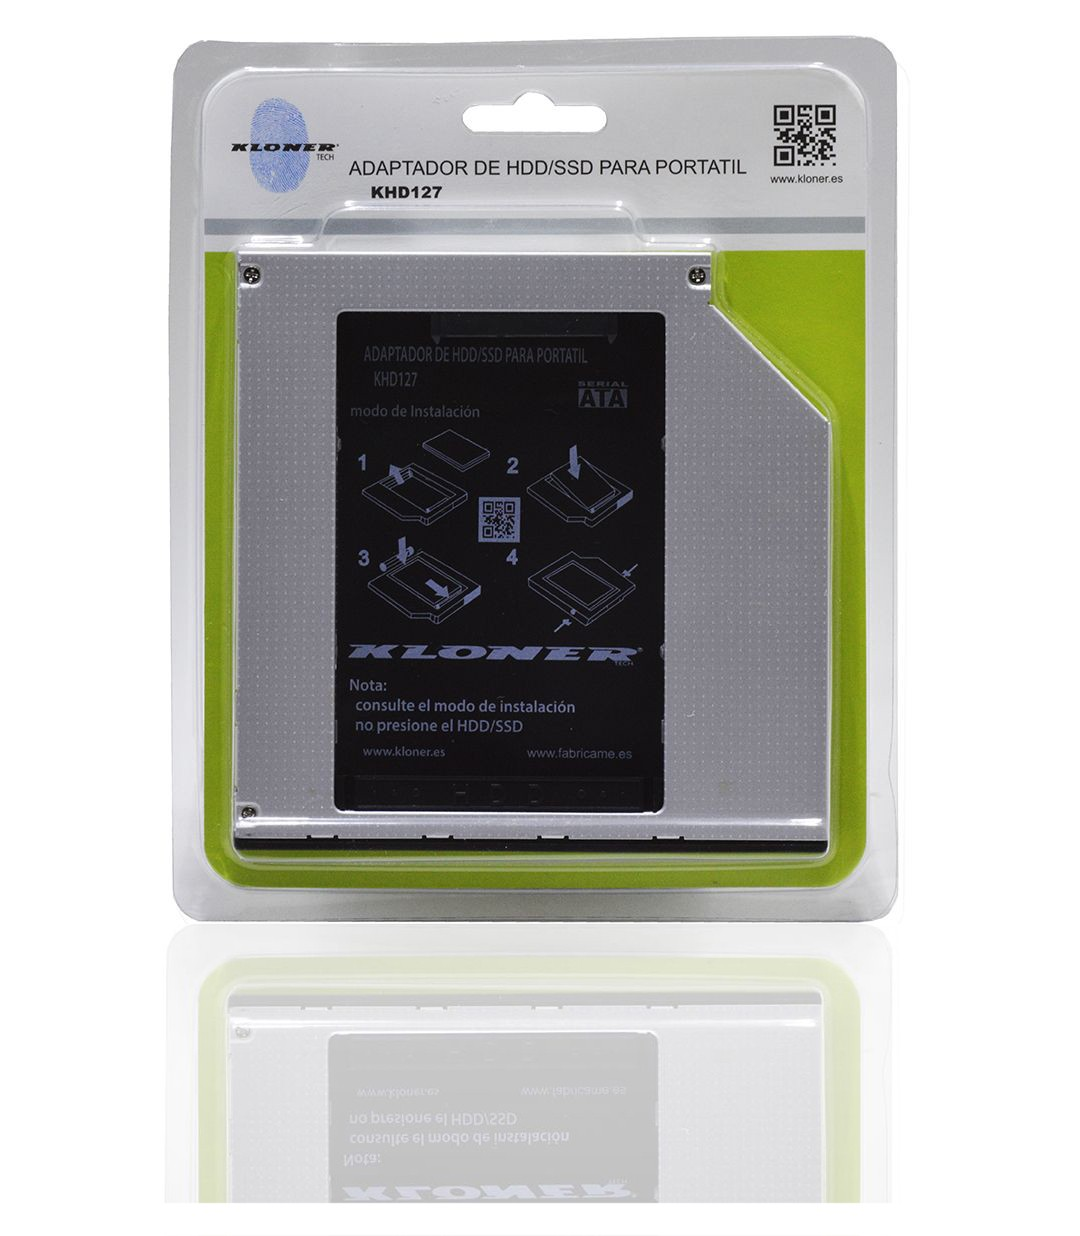 ADAPTADOR HDD/SSD PARA PORTATIL 12.7mm - New Web Kloner